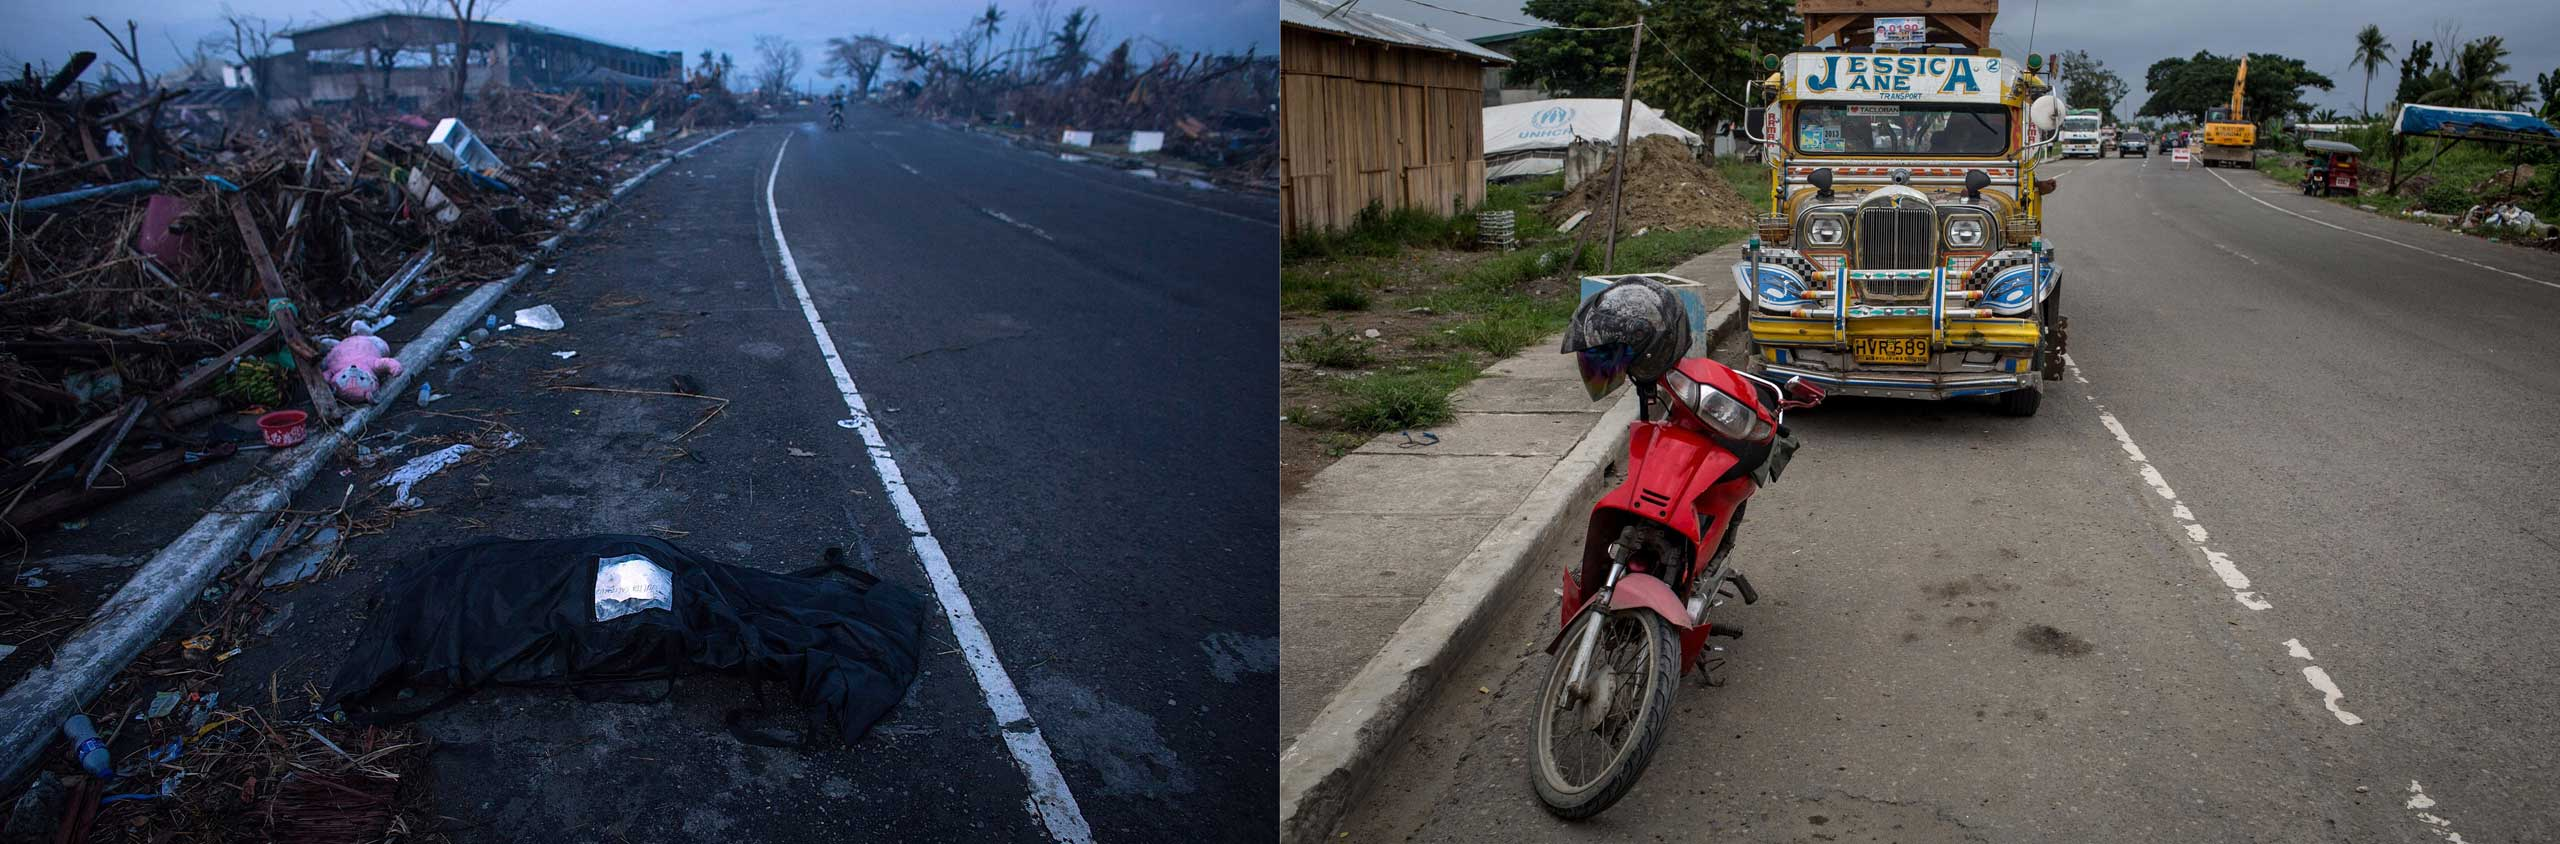 Before: A body waits to be collect on the side of the road in Tacloban City on Nov. 14, 2013 in Leyte, Philippines.After: View along the road from the airport one year after Typhoon Haiyan on Nov. 3, 2014.